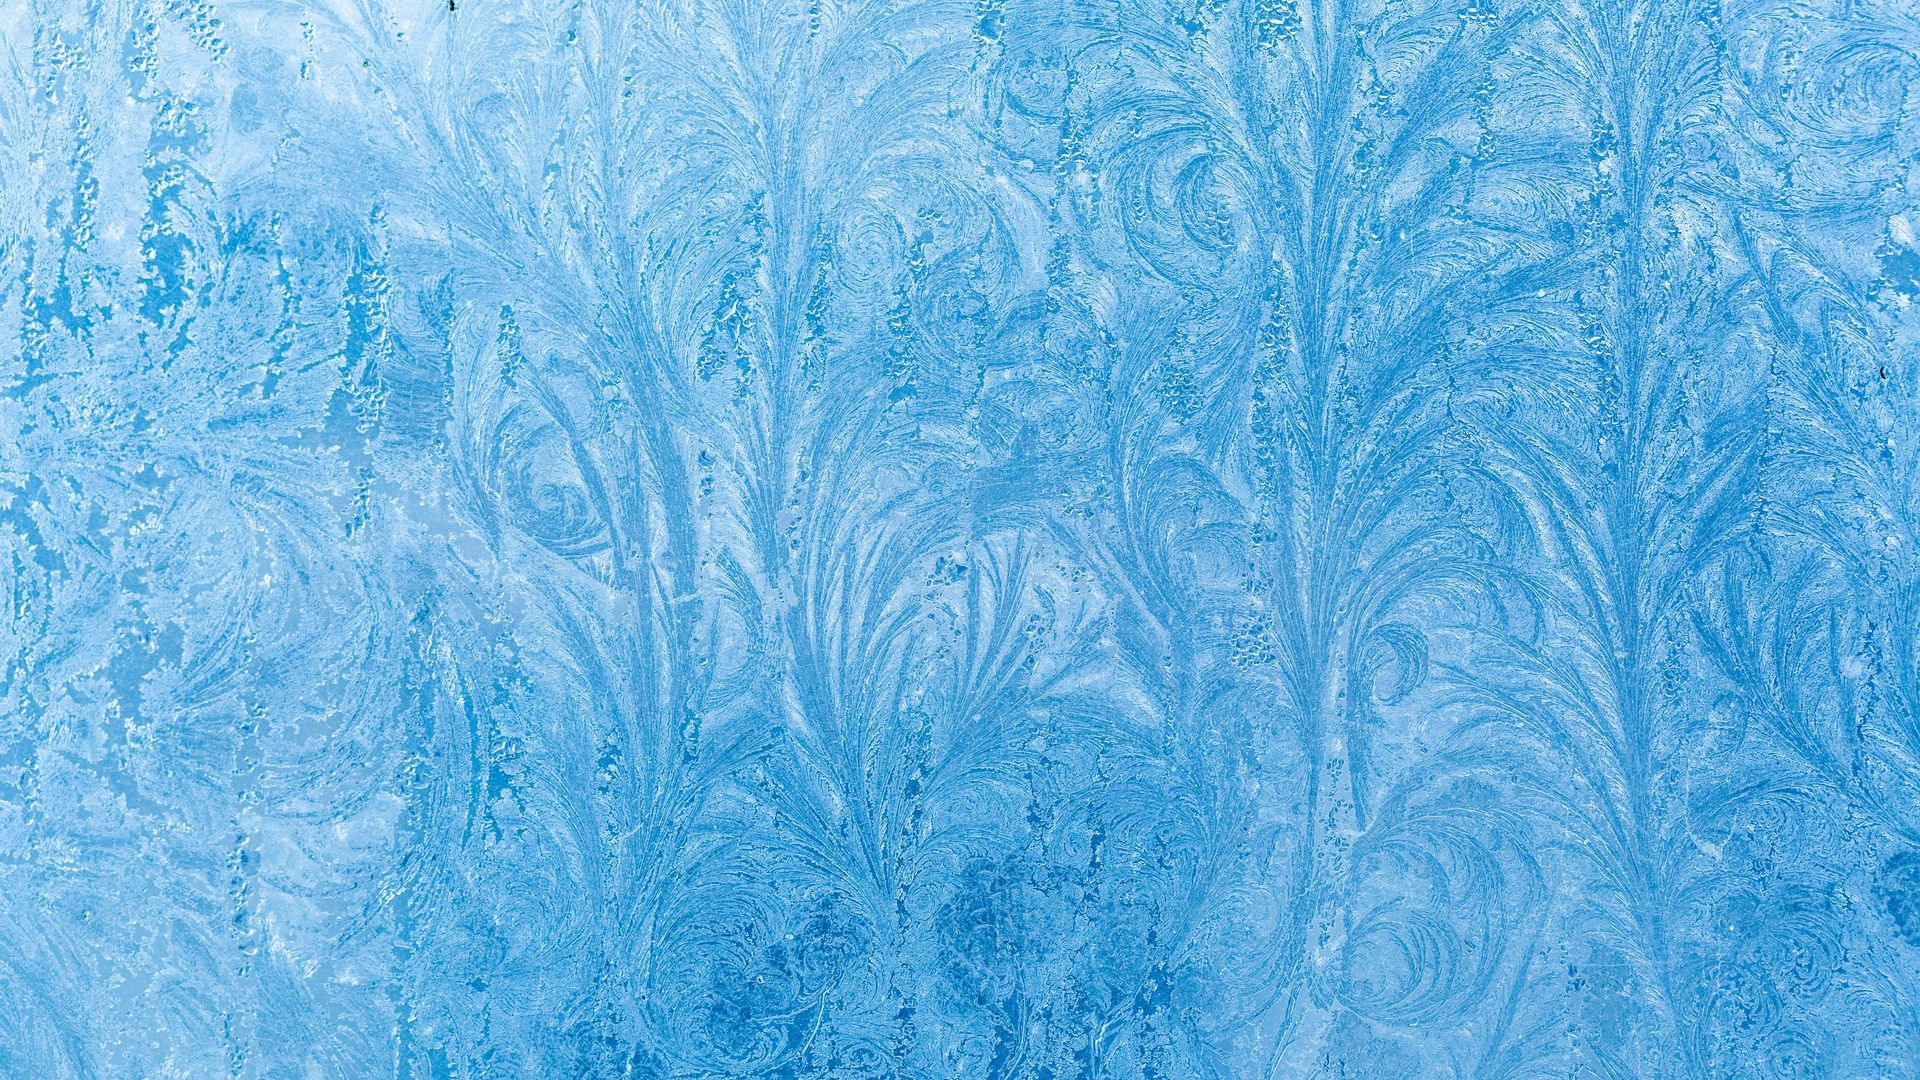 Winter Patterns On The Window HD Download